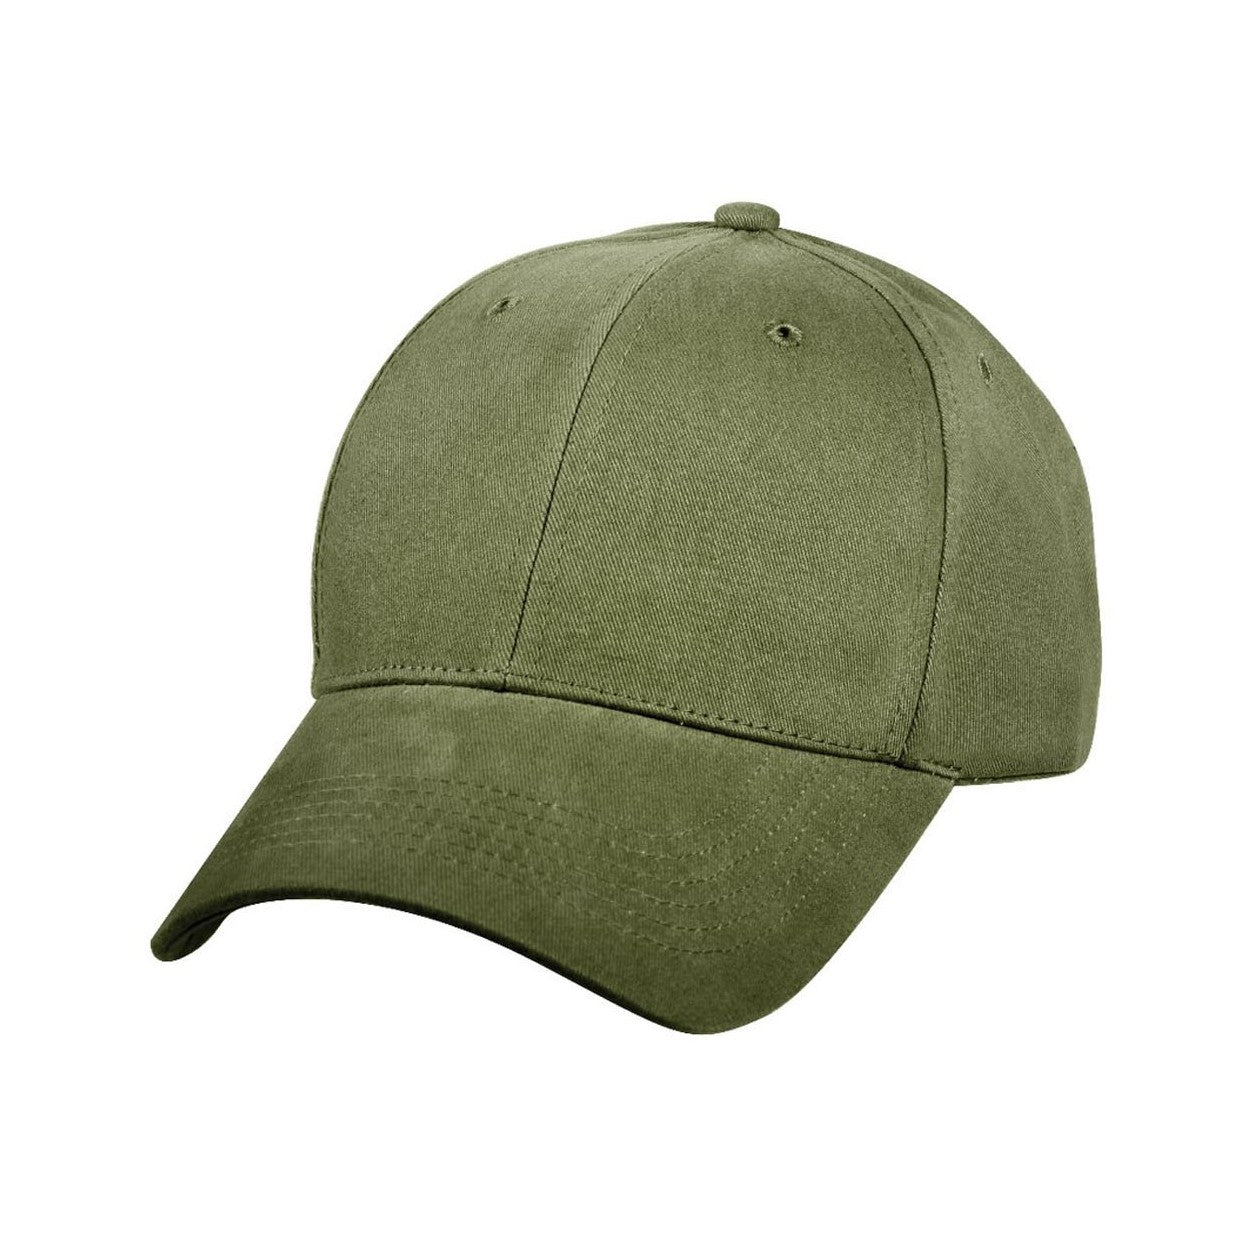 Low Profile Adjustable Hat Olive Drab